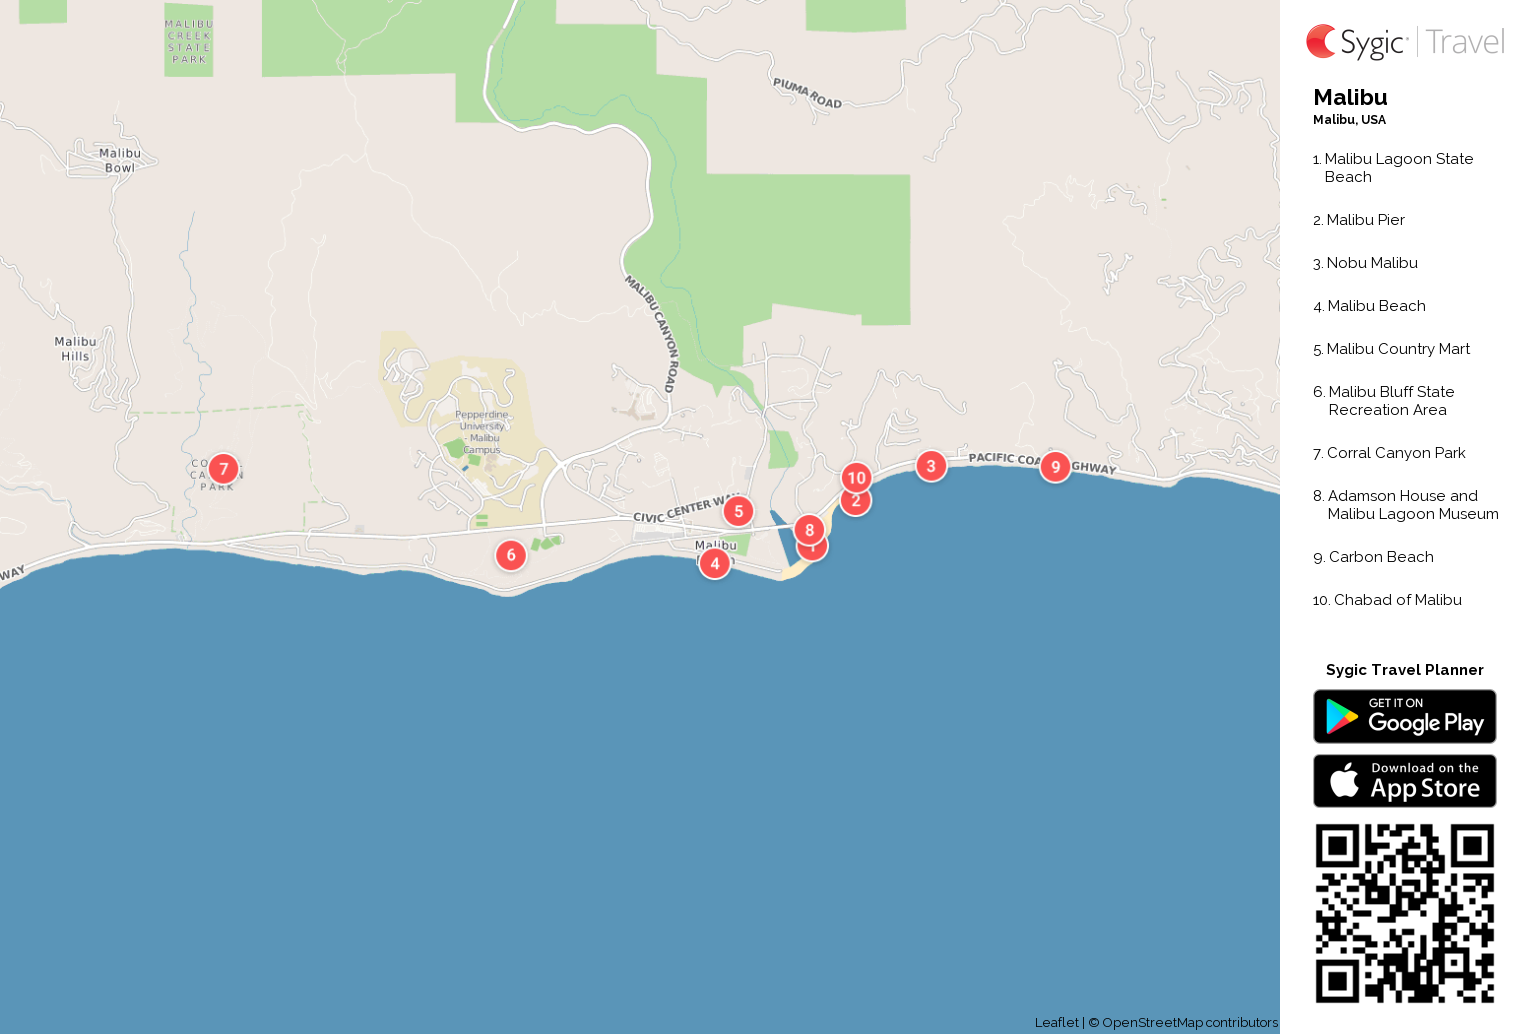 malibu-printable-tourist-map